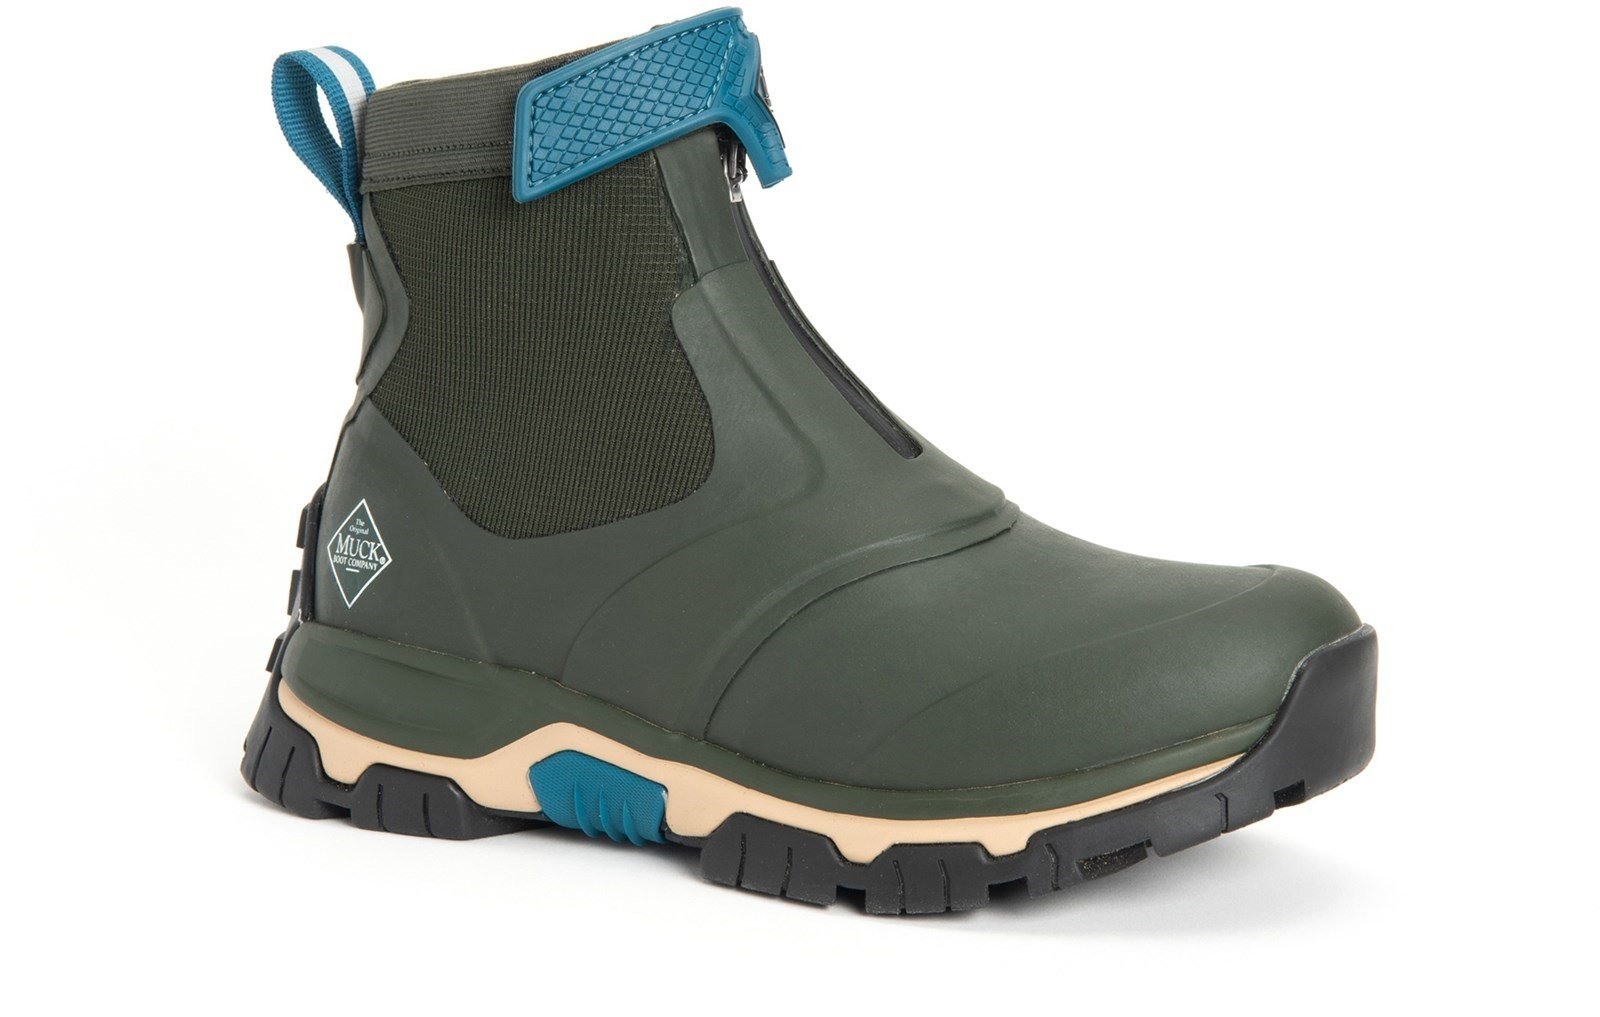 Muck Boots Unisex Apex Mid Zip Boot Various Colours 30982 - Moss/Tan 3